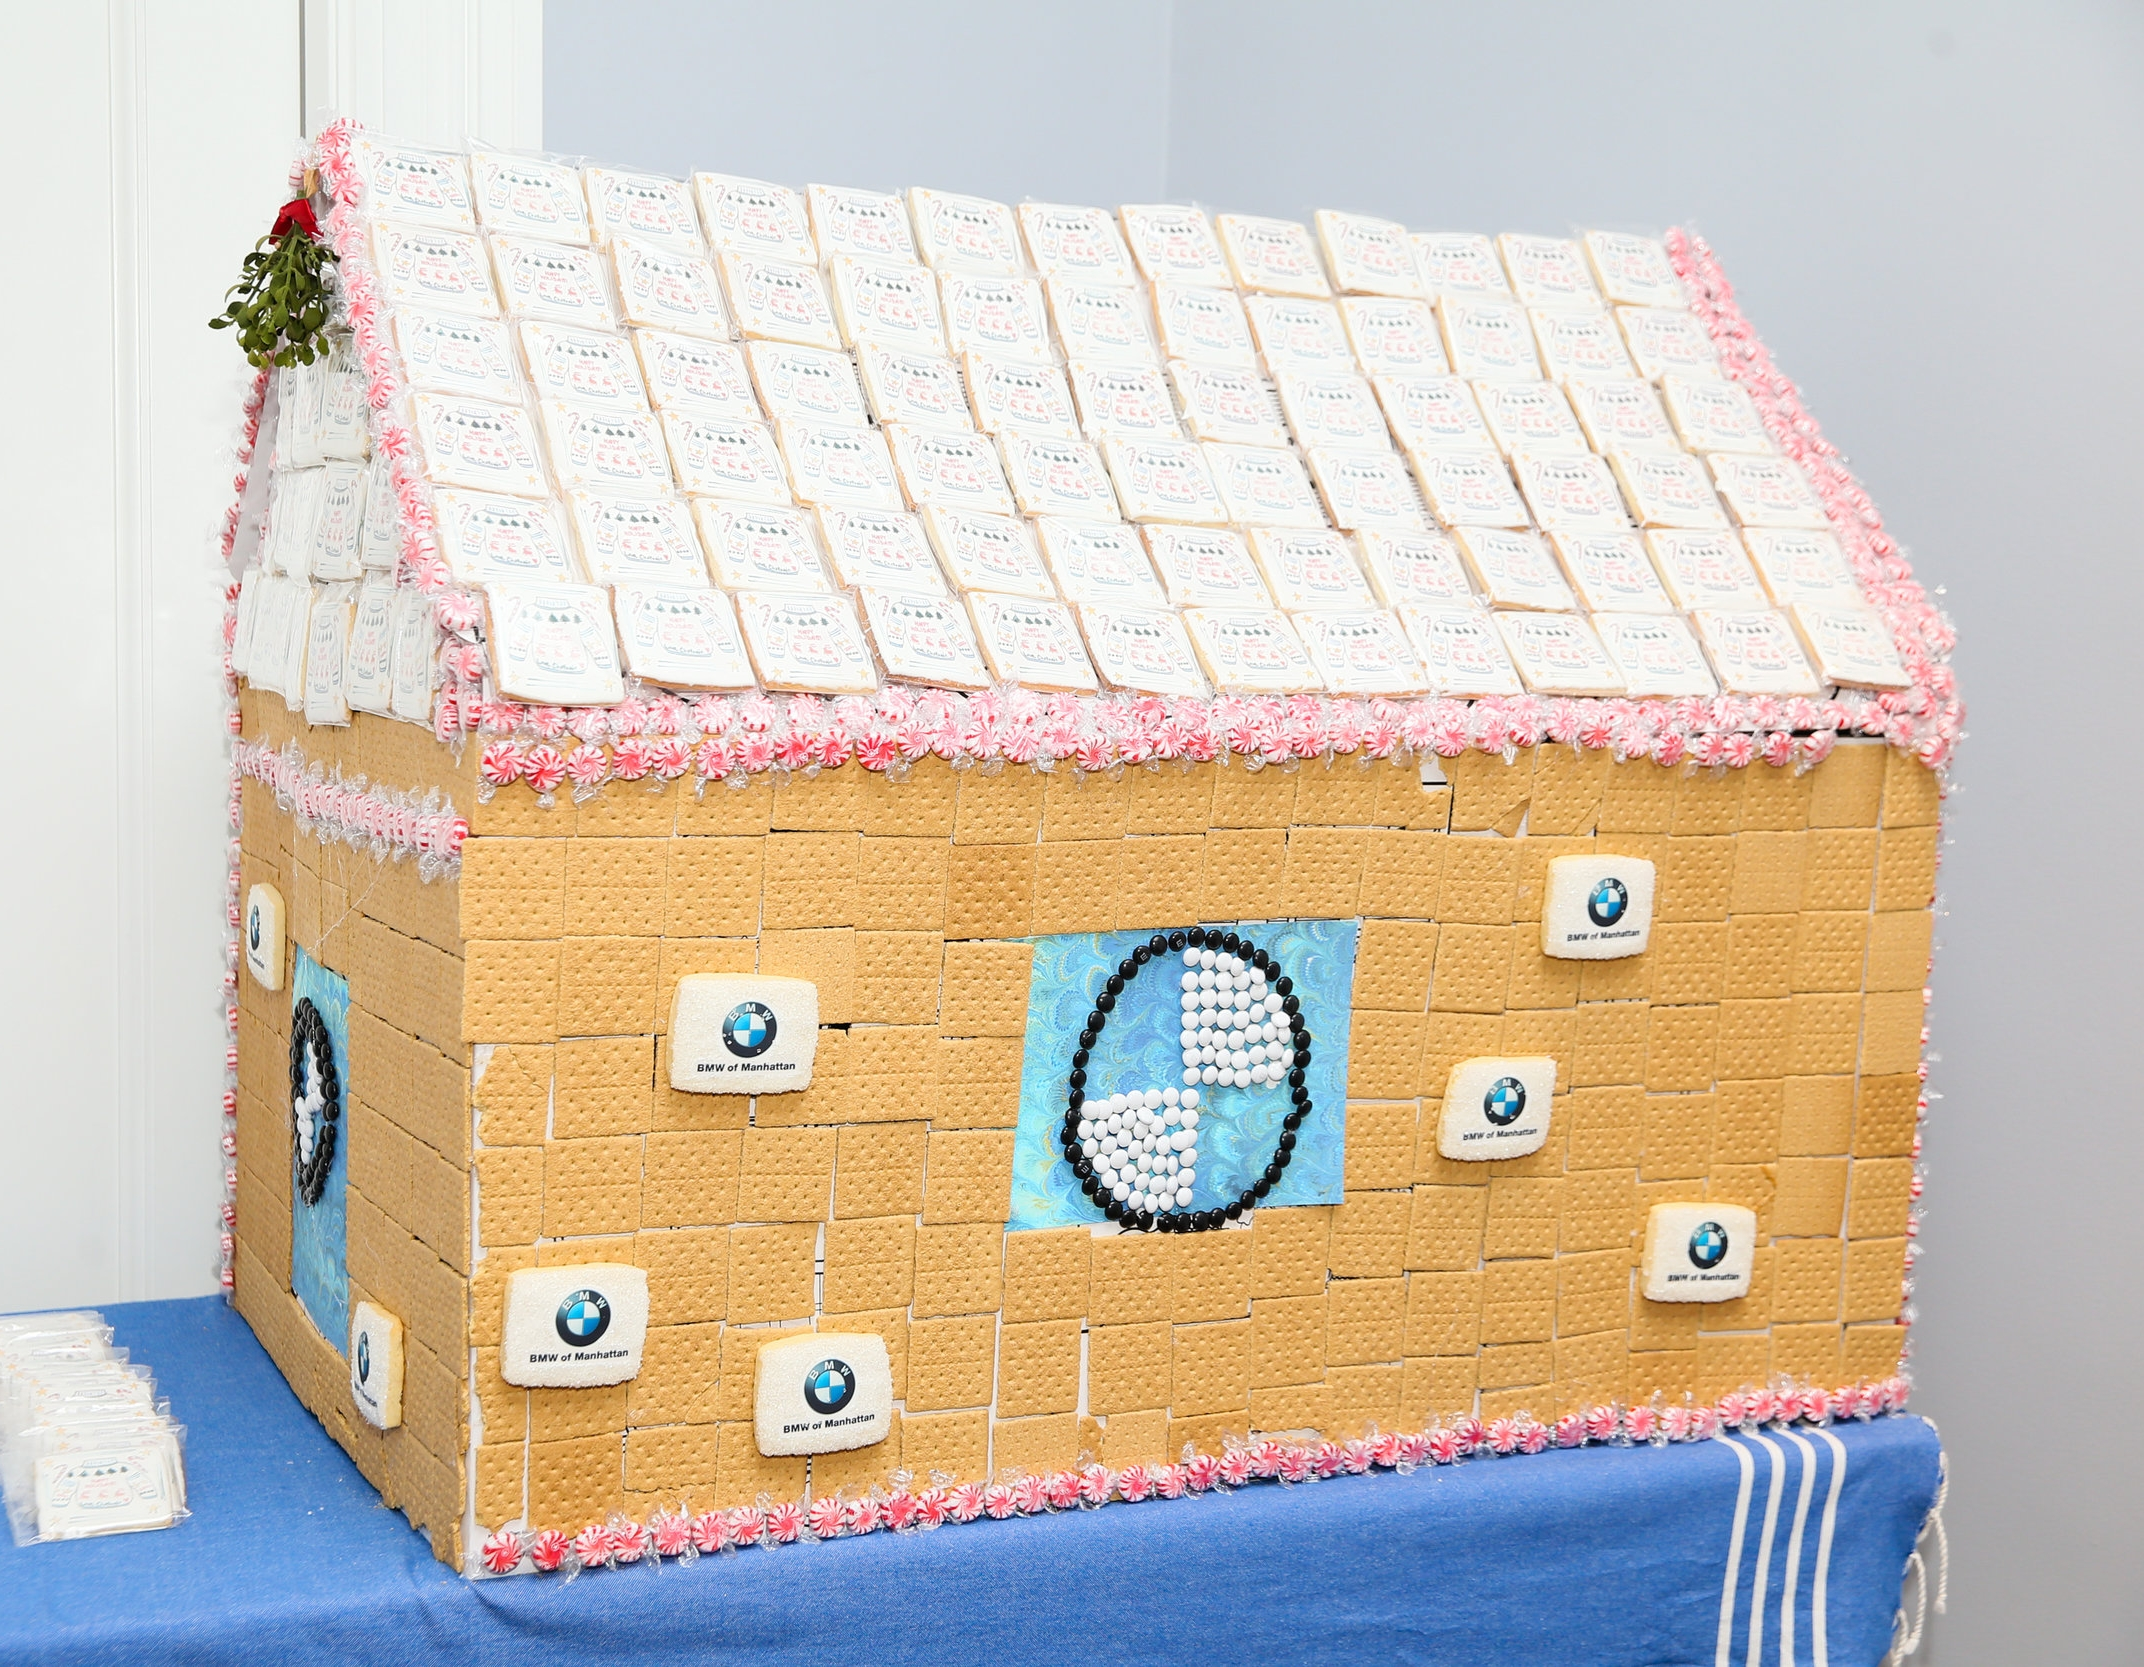 5 foot Gingerbread House. Photo credit: Noa Griffel for BFA